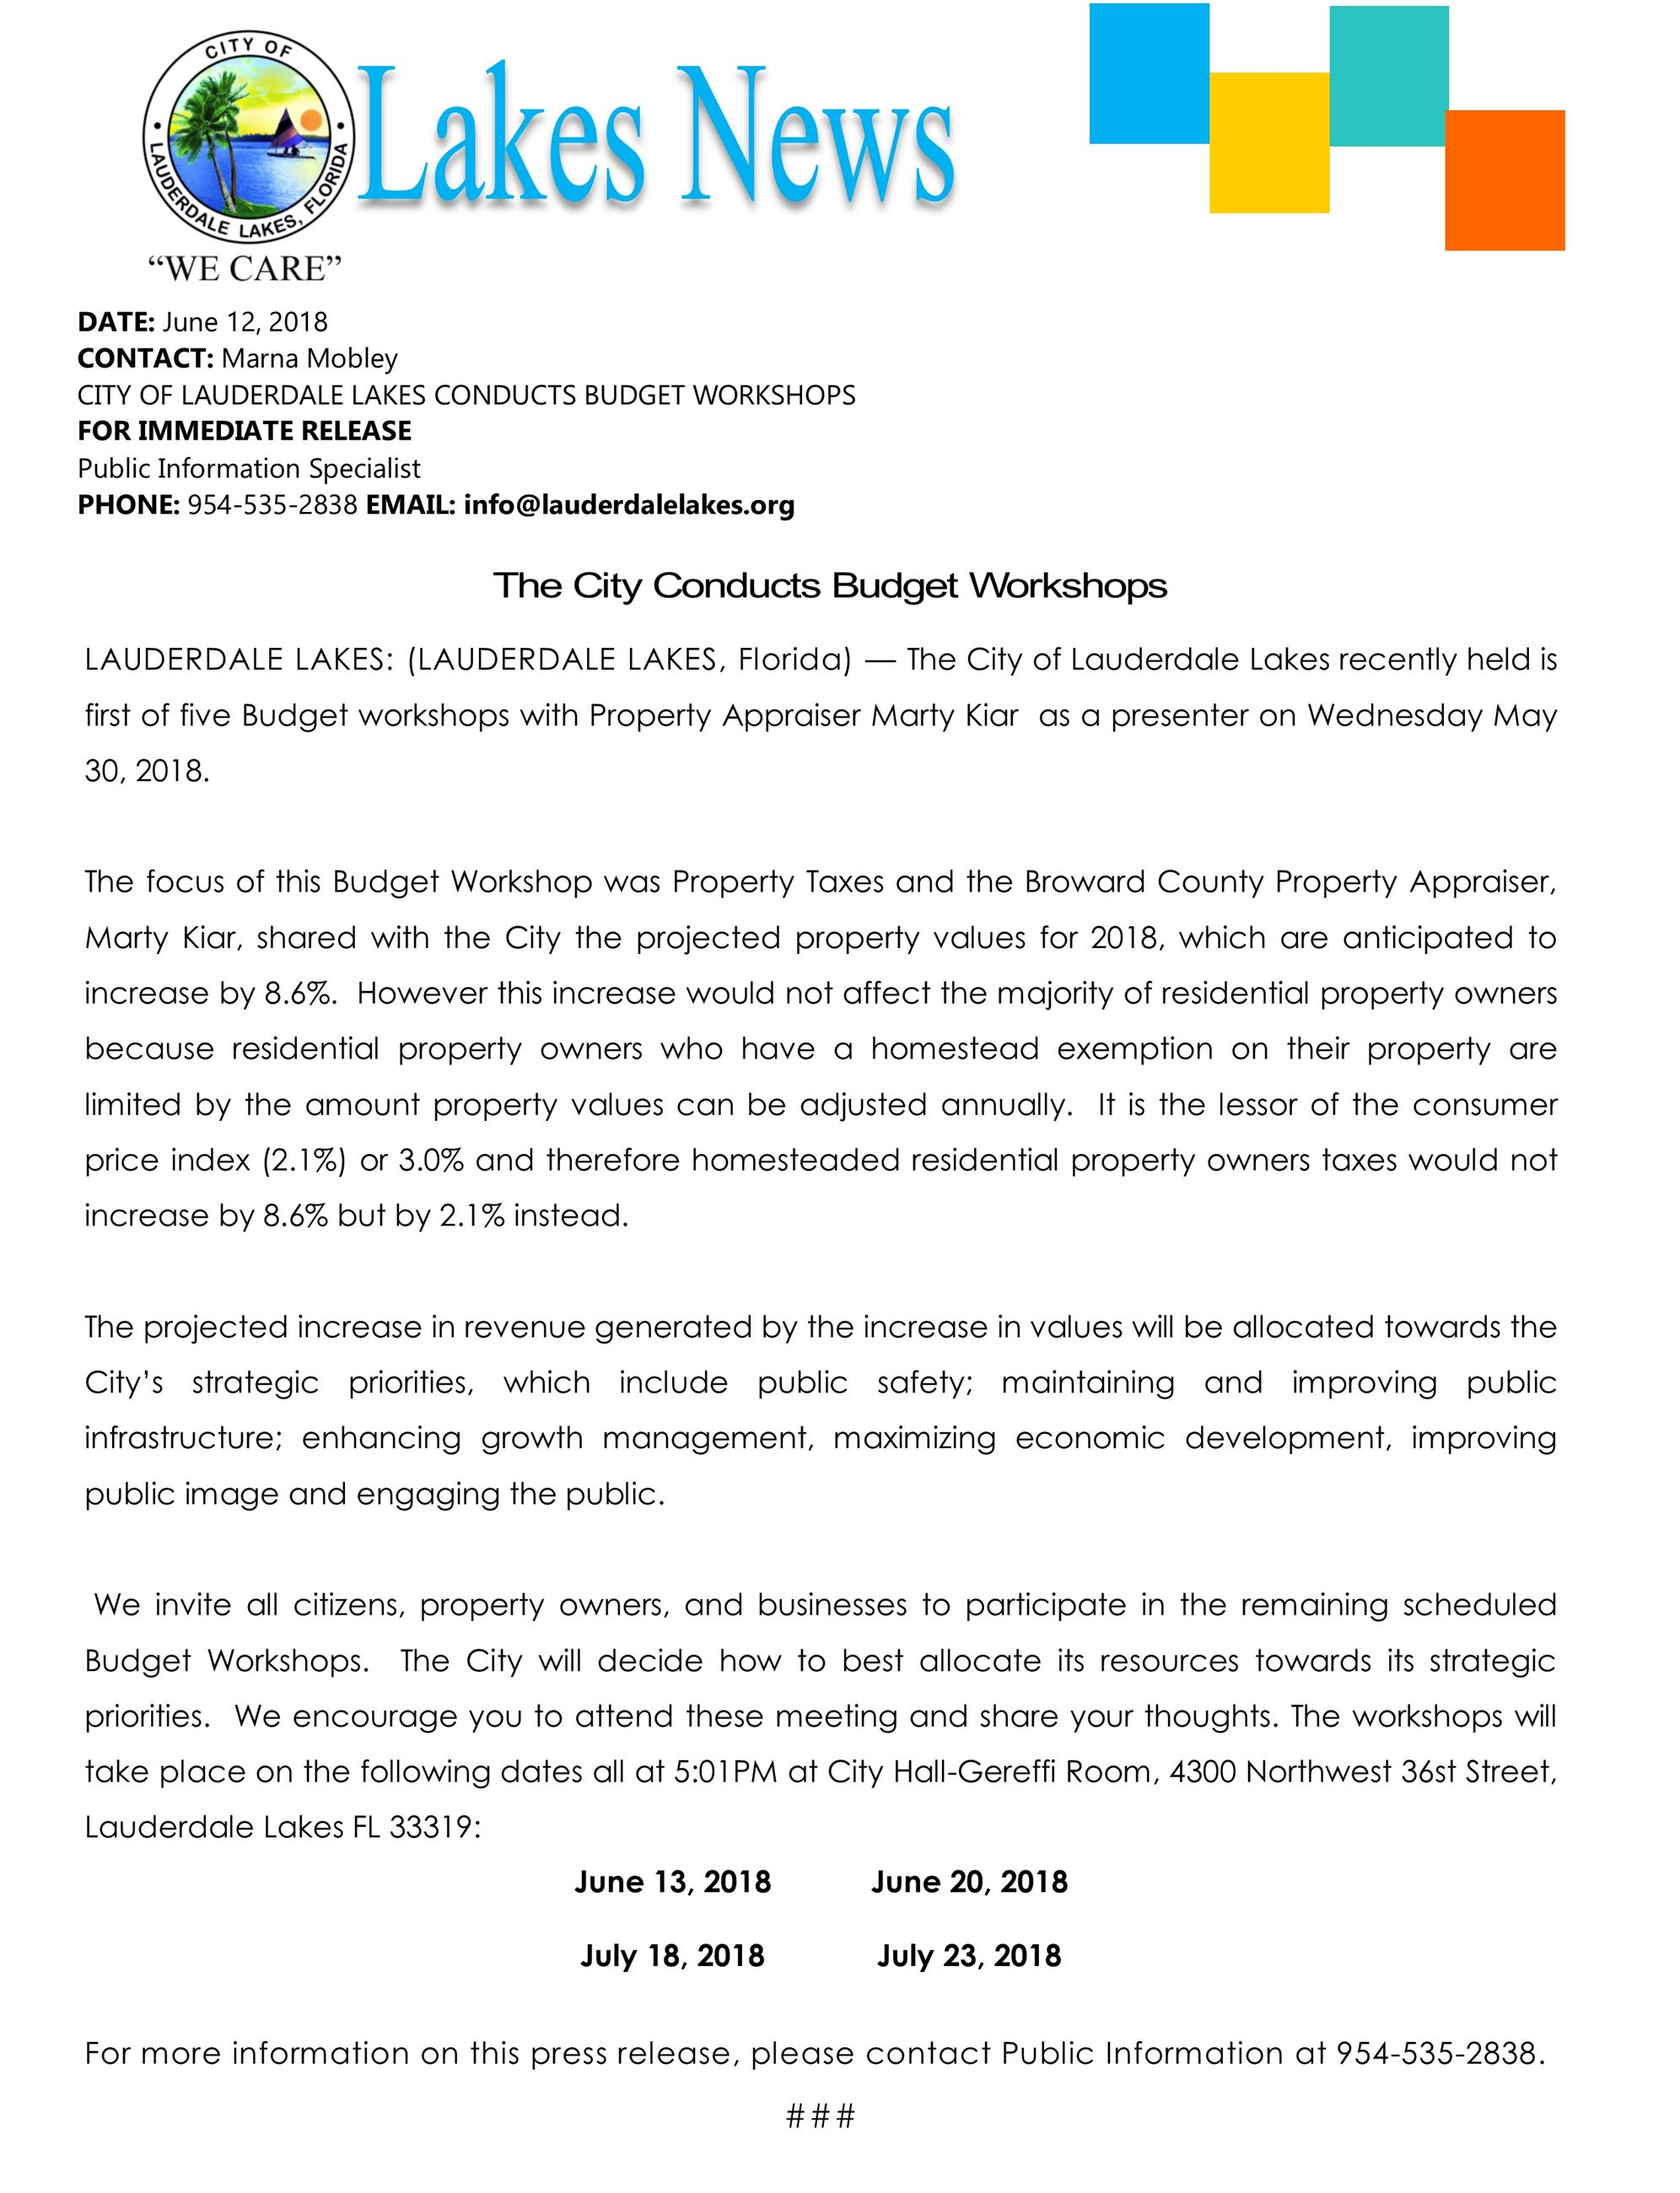 Press.Budget Workshops